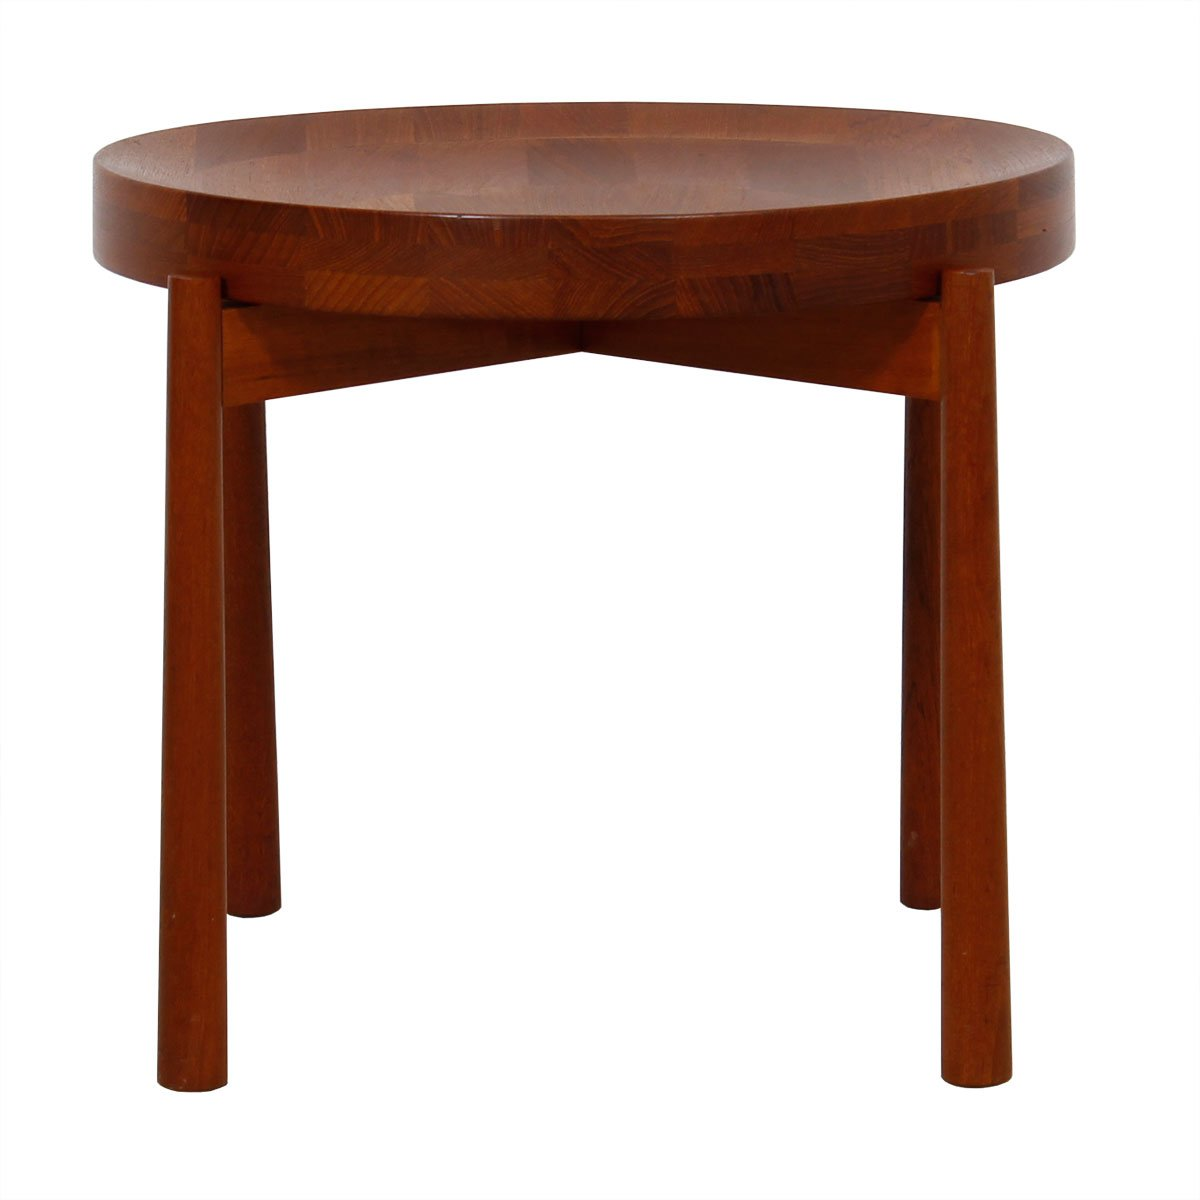 Jens Quistgaard Solid Teak Round Flip-Top Accent Table